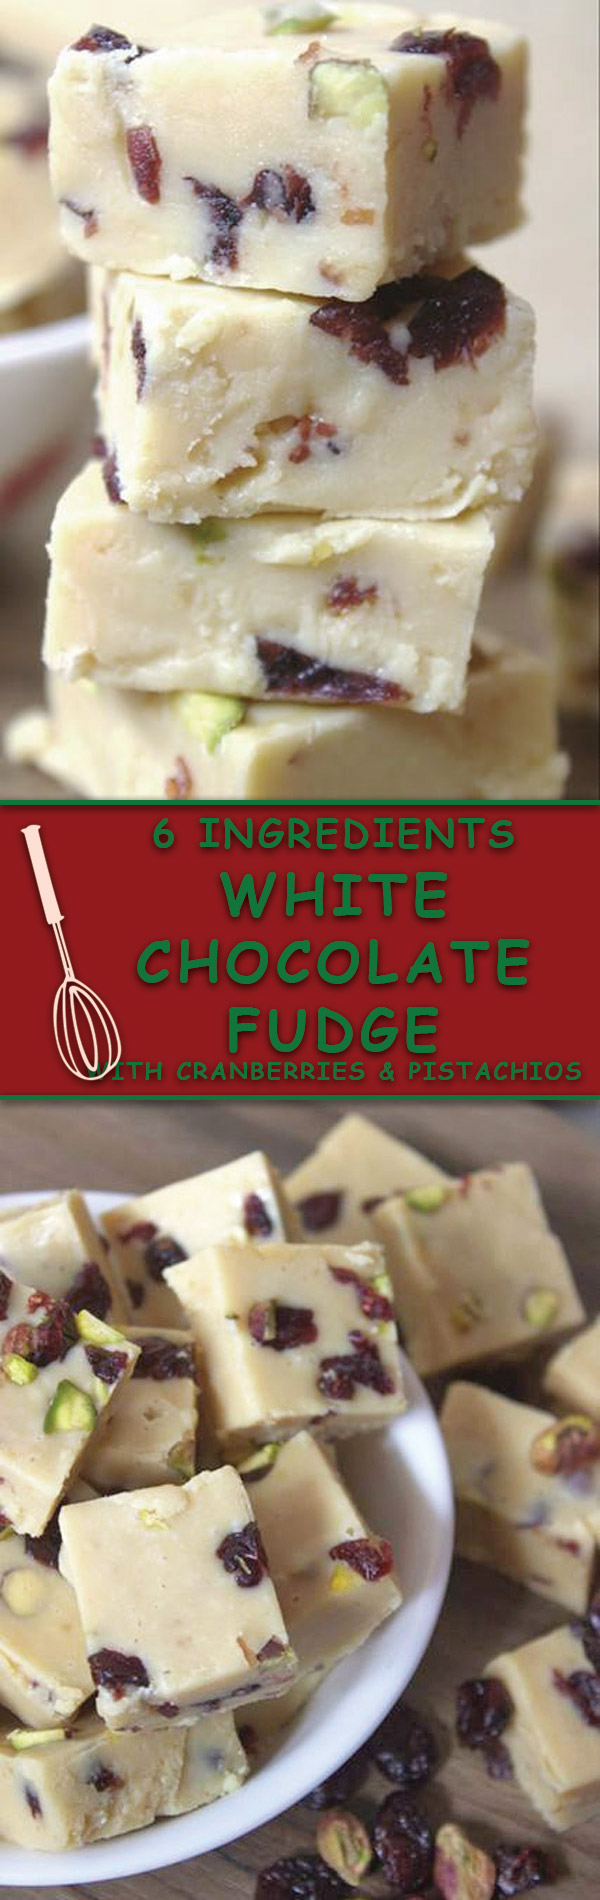 White Chocolate Fudge : Just 6 Ingredients, NO BAKE fudge with cranberries & pistachios. A great holiday gift or perfect for easy holiday desserts!